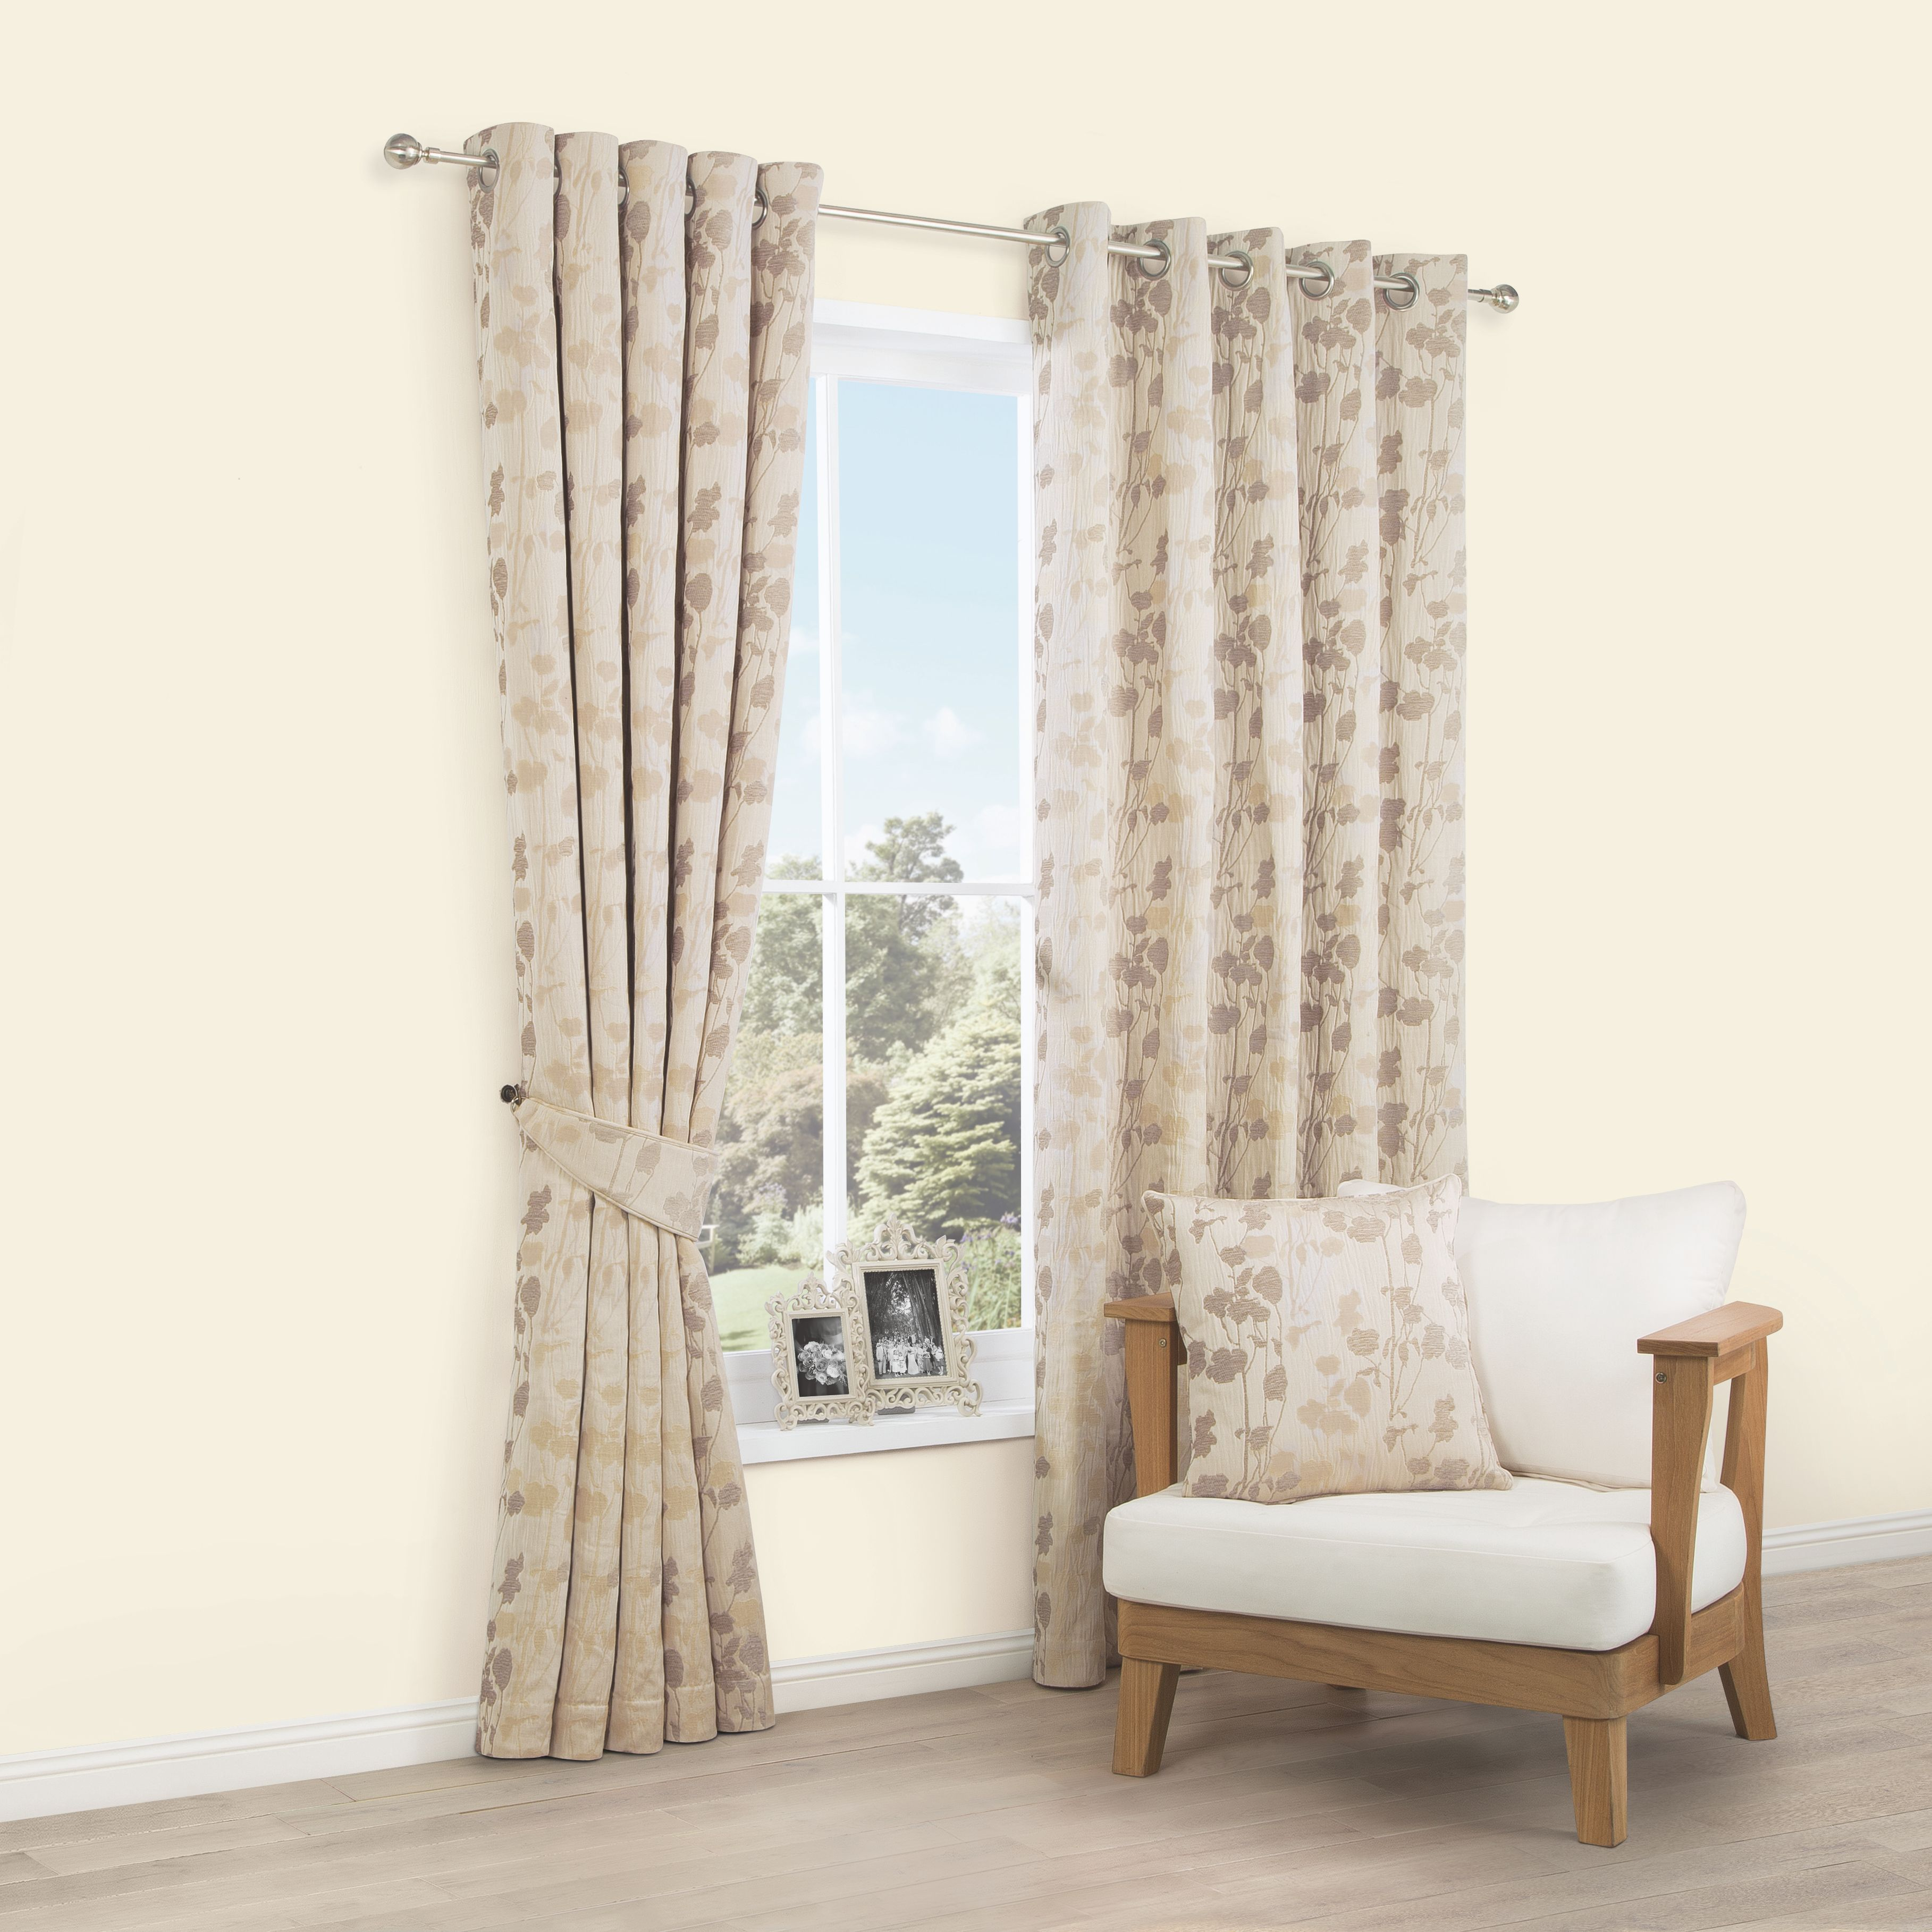 Alessandra Ivory Meadow Woven Eyelet Lined Curtains (W)228cm